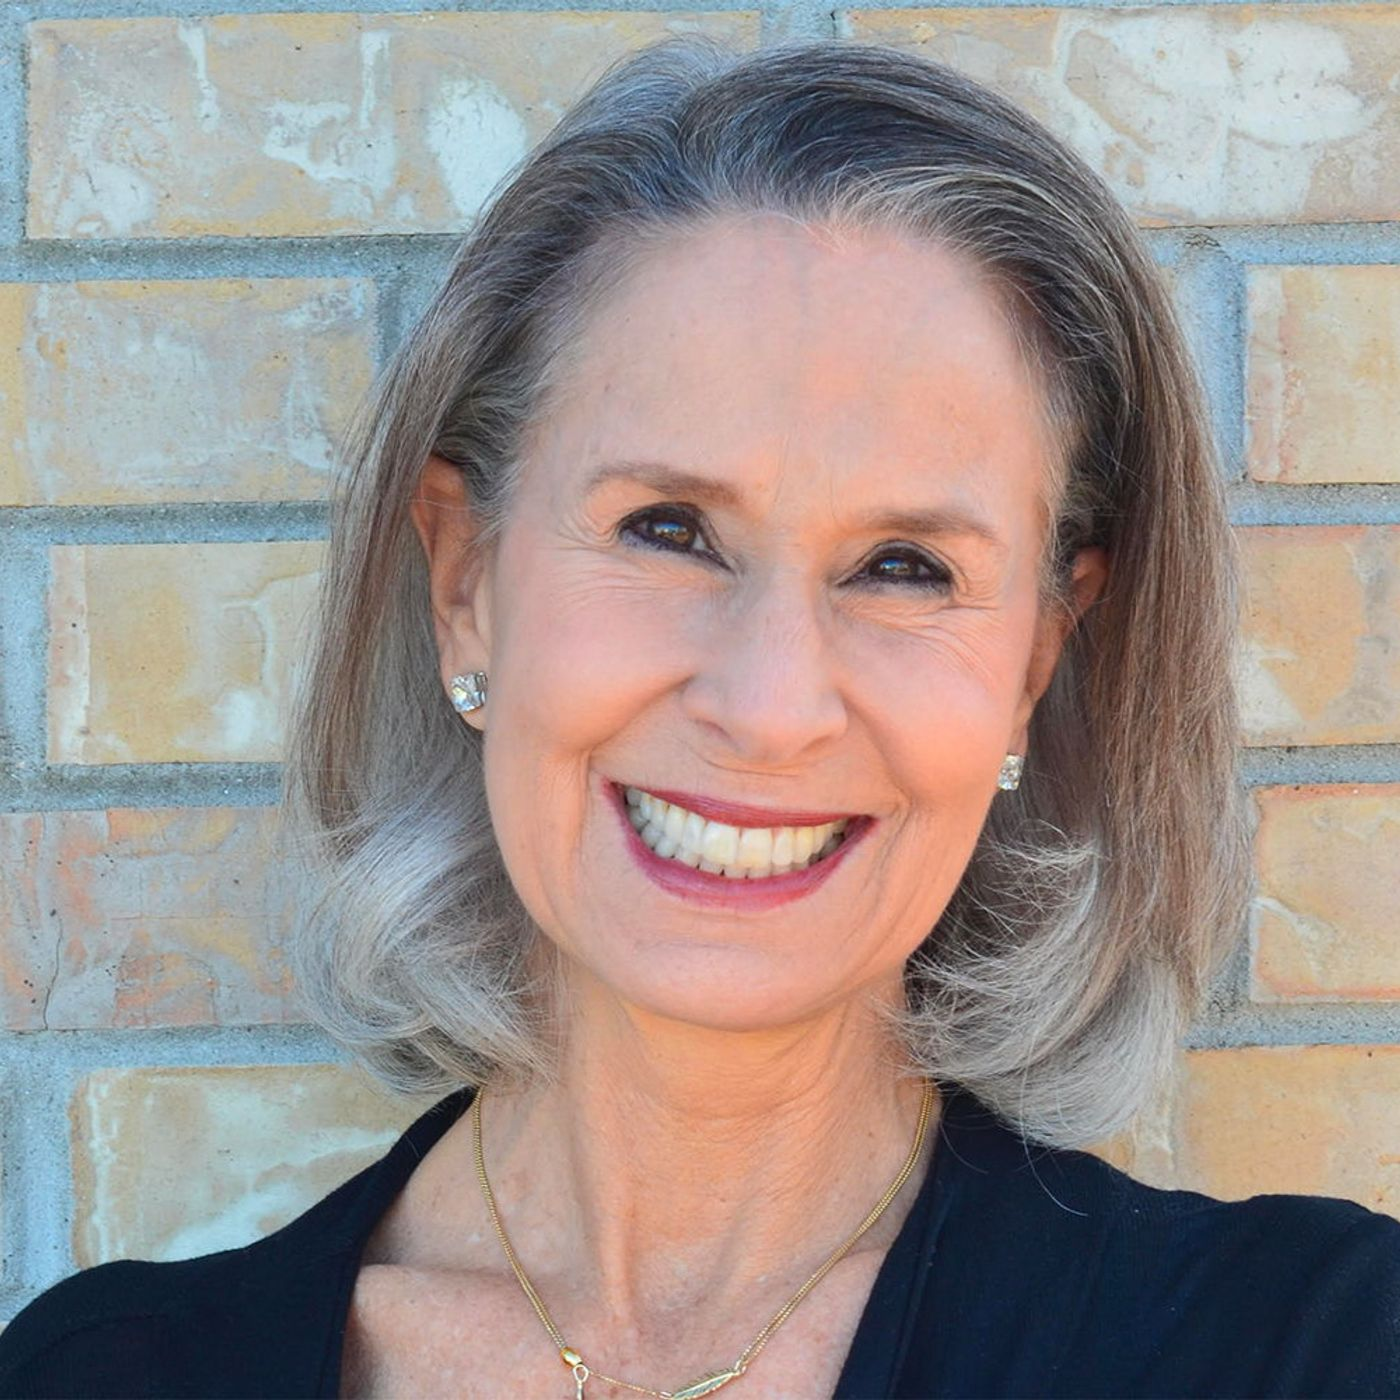 Episode 3: Maintaining Friendships as We Age with Joy Loverde